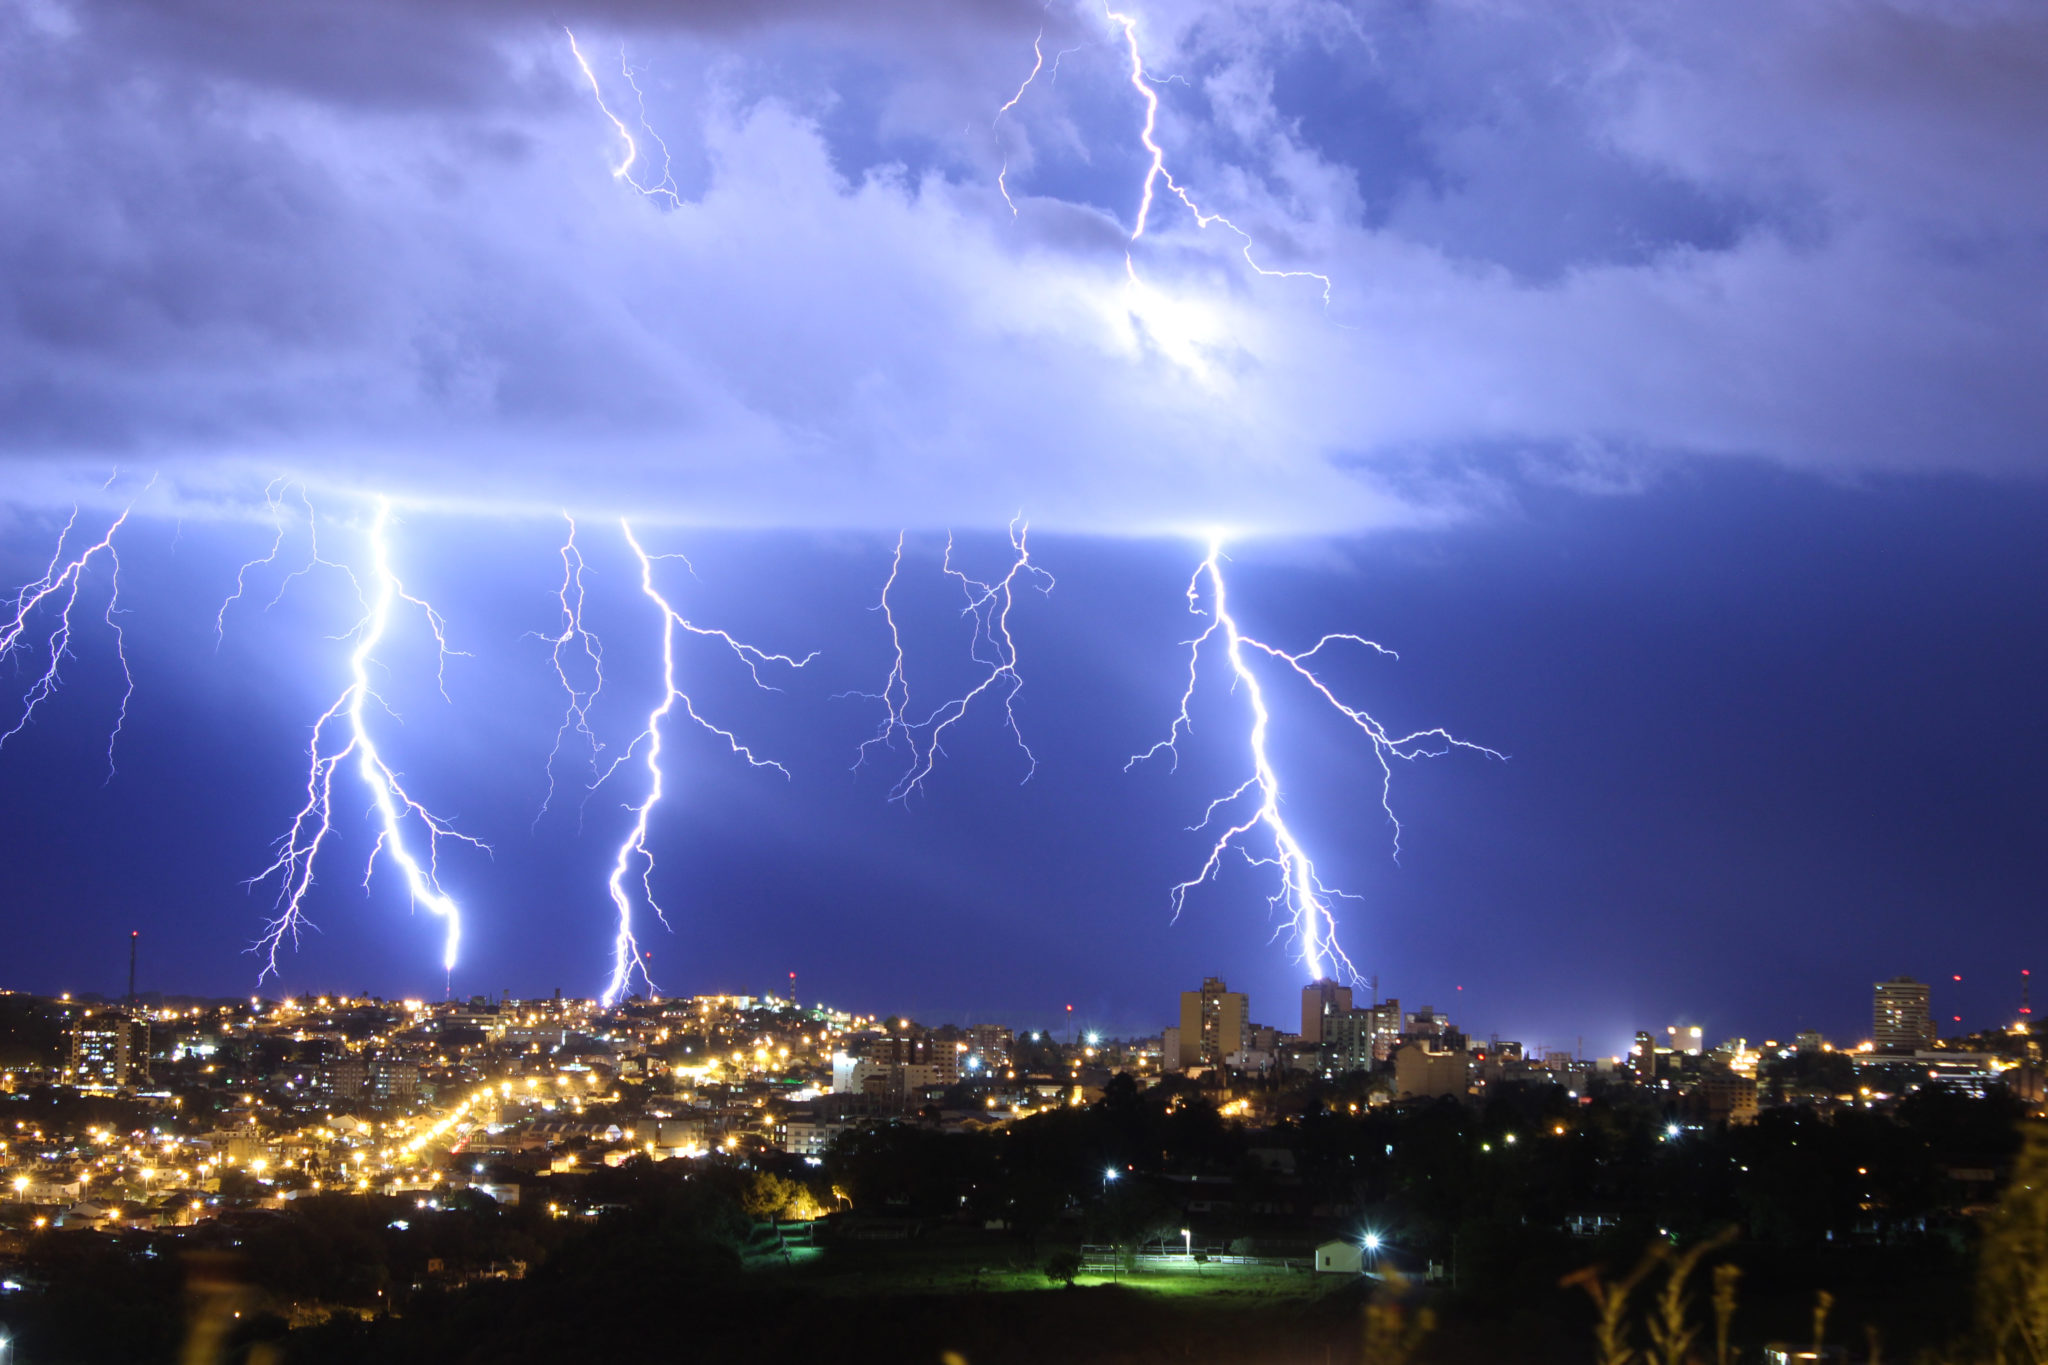 What makes Brazil the lightning capital of the world?